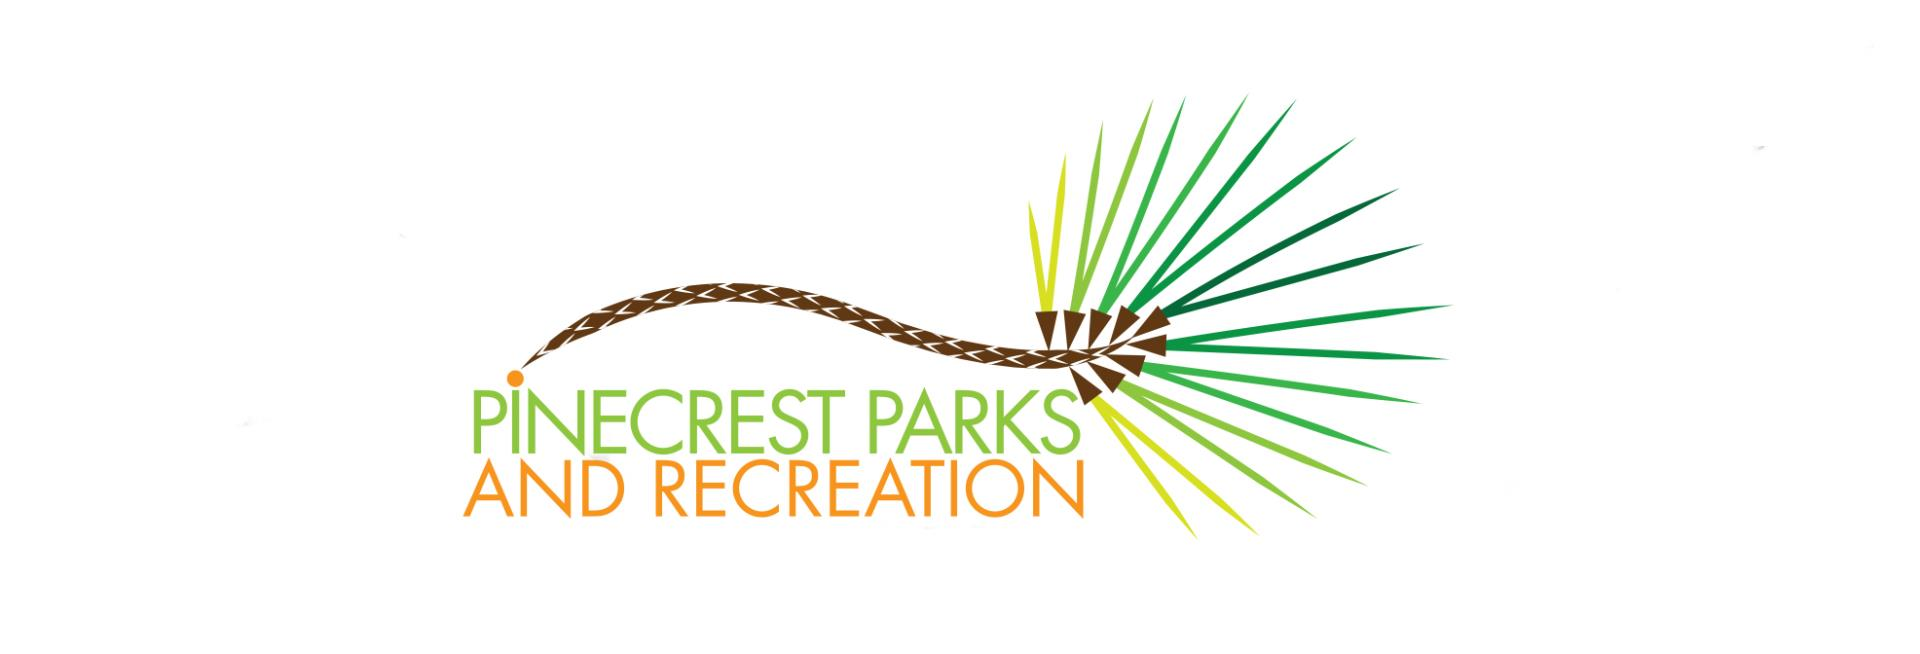 Parks and Recreation Pine Cone Logo